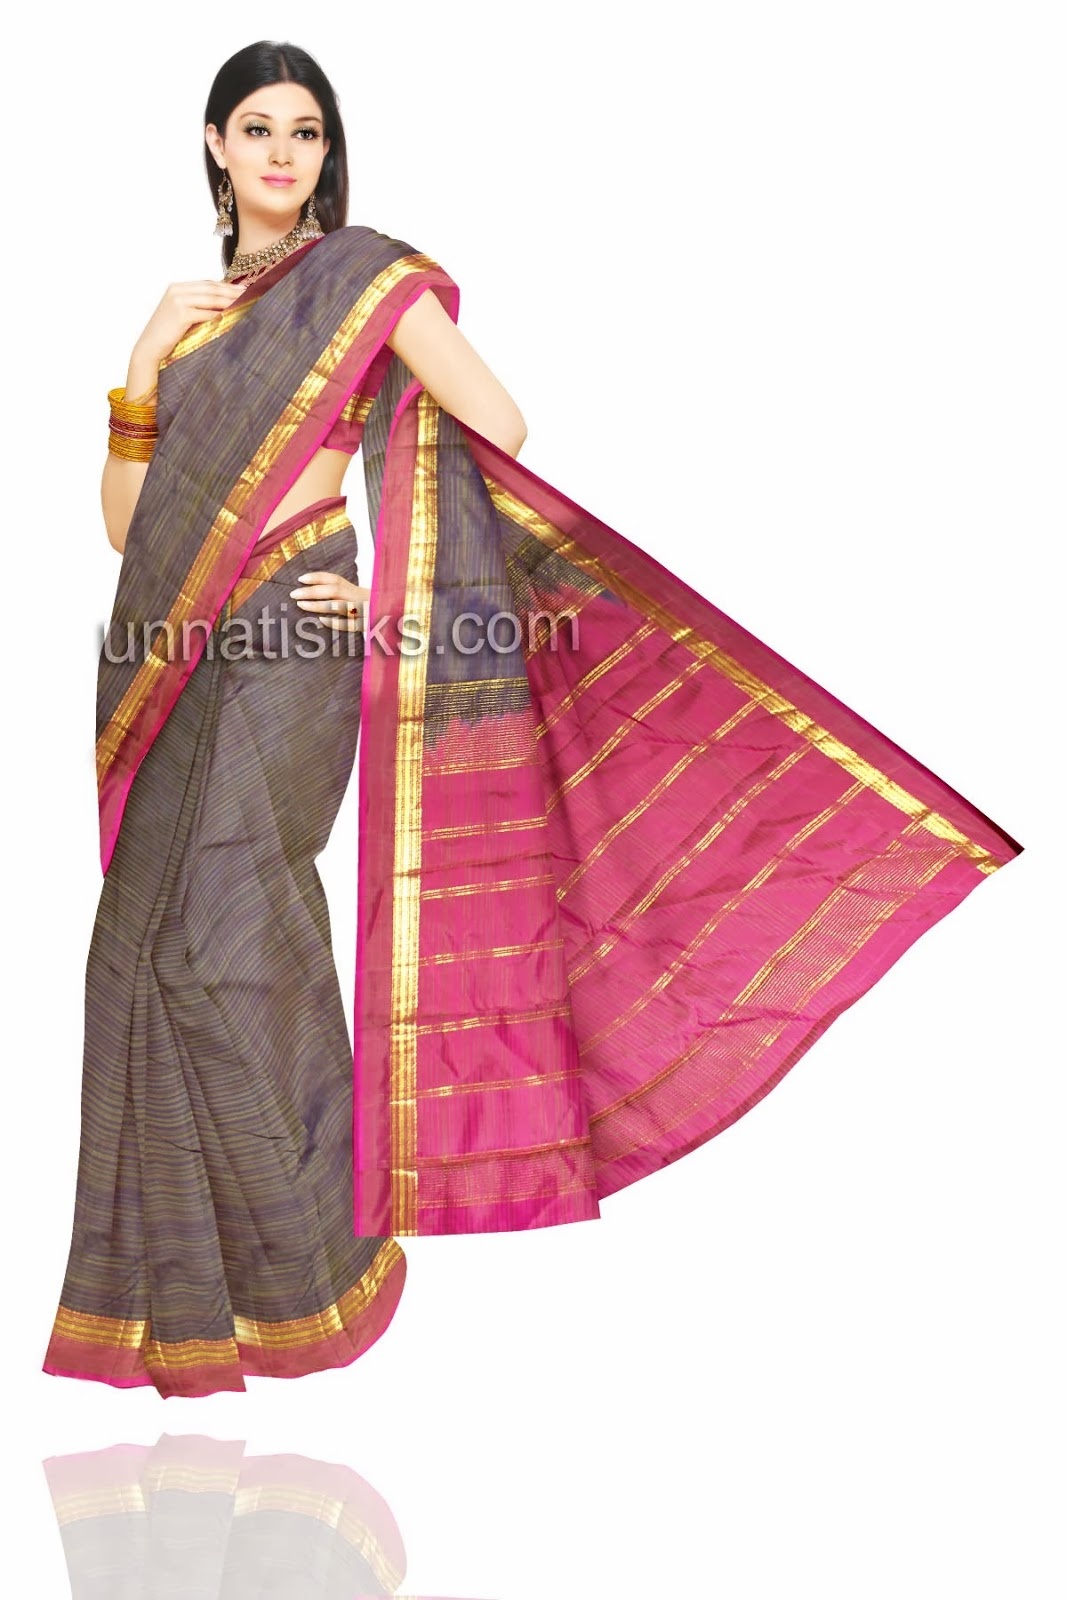 9308fcf183 Pure silk Pattu Sarees Online | The Complete Fashion Wear for Women